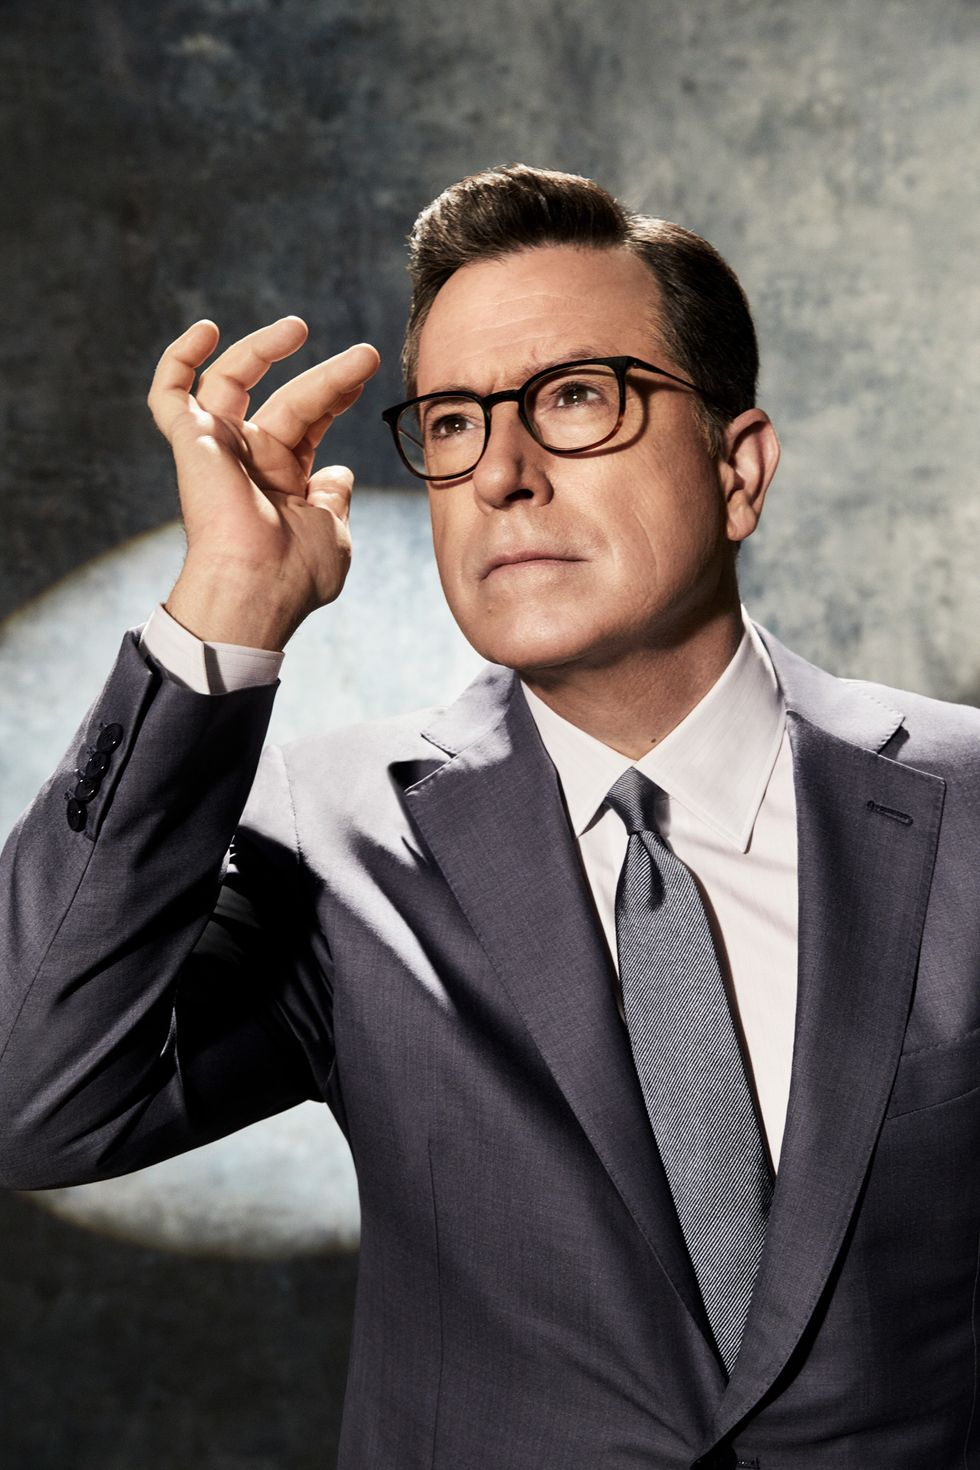 Stephen Colbert in a gray suit with a spotlight behind him.